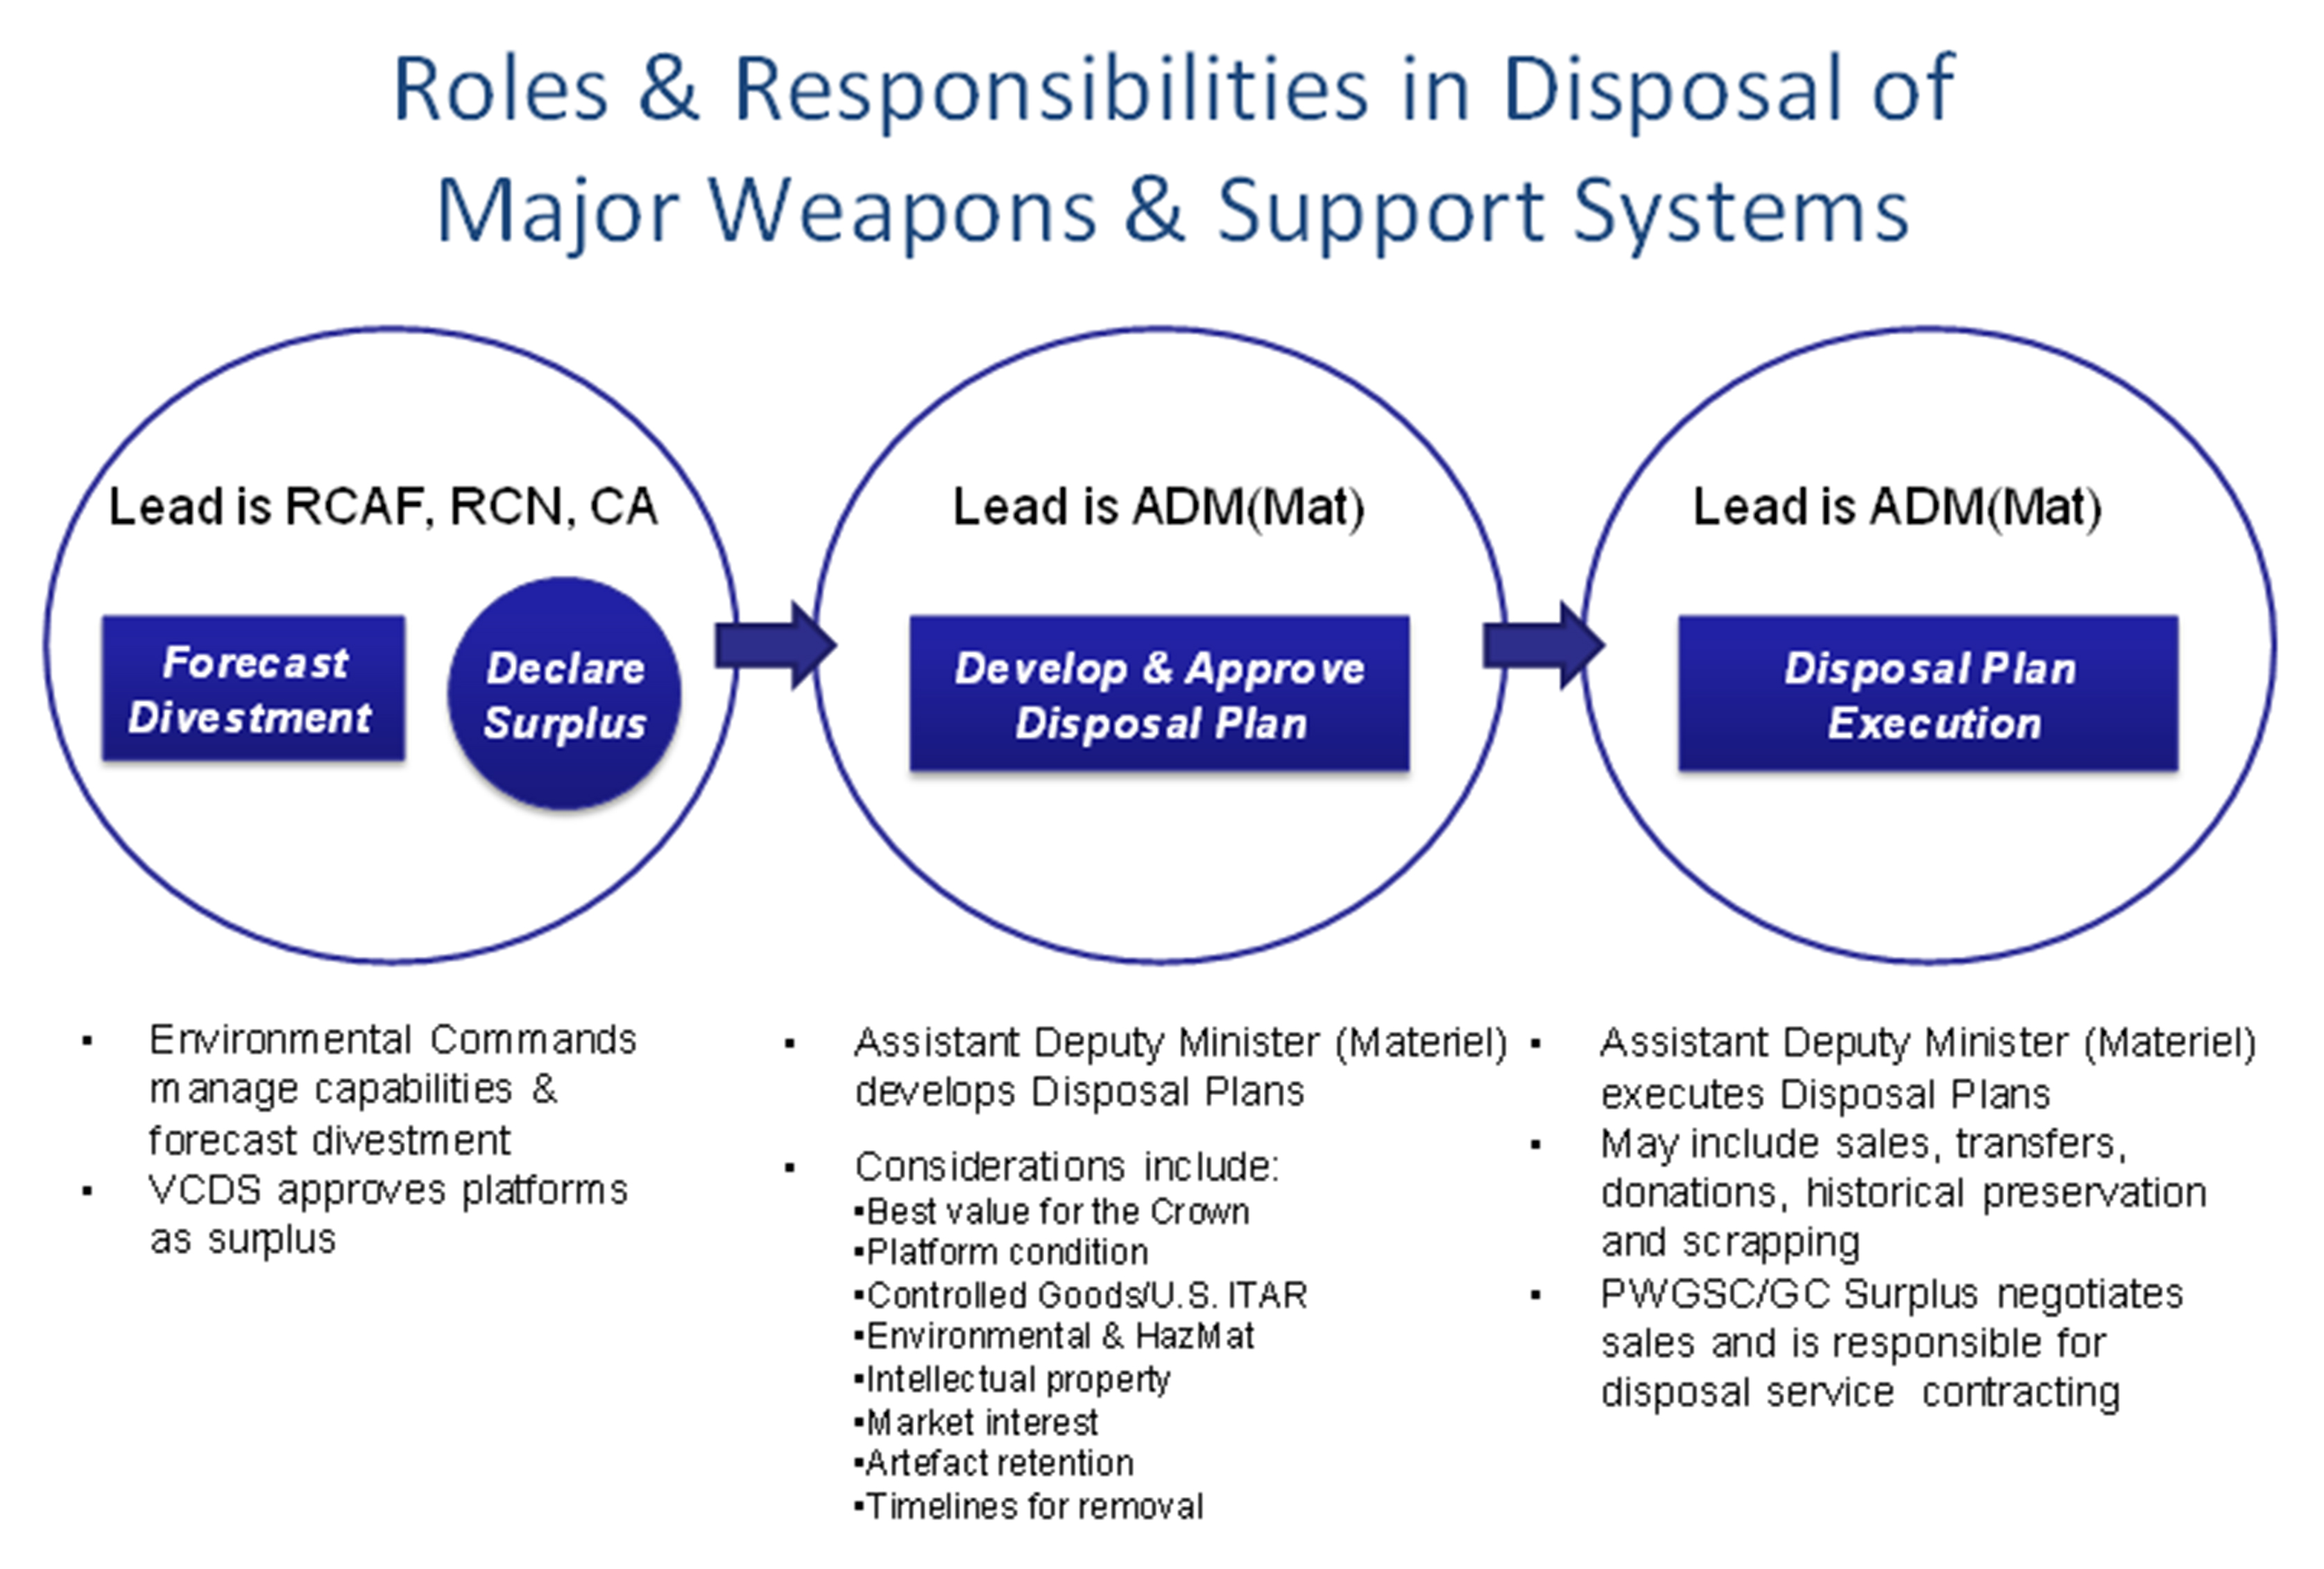 Shown above is a chart depicting the roles and responsibilities in the three-stage disposal process of major weapons and support systems. 